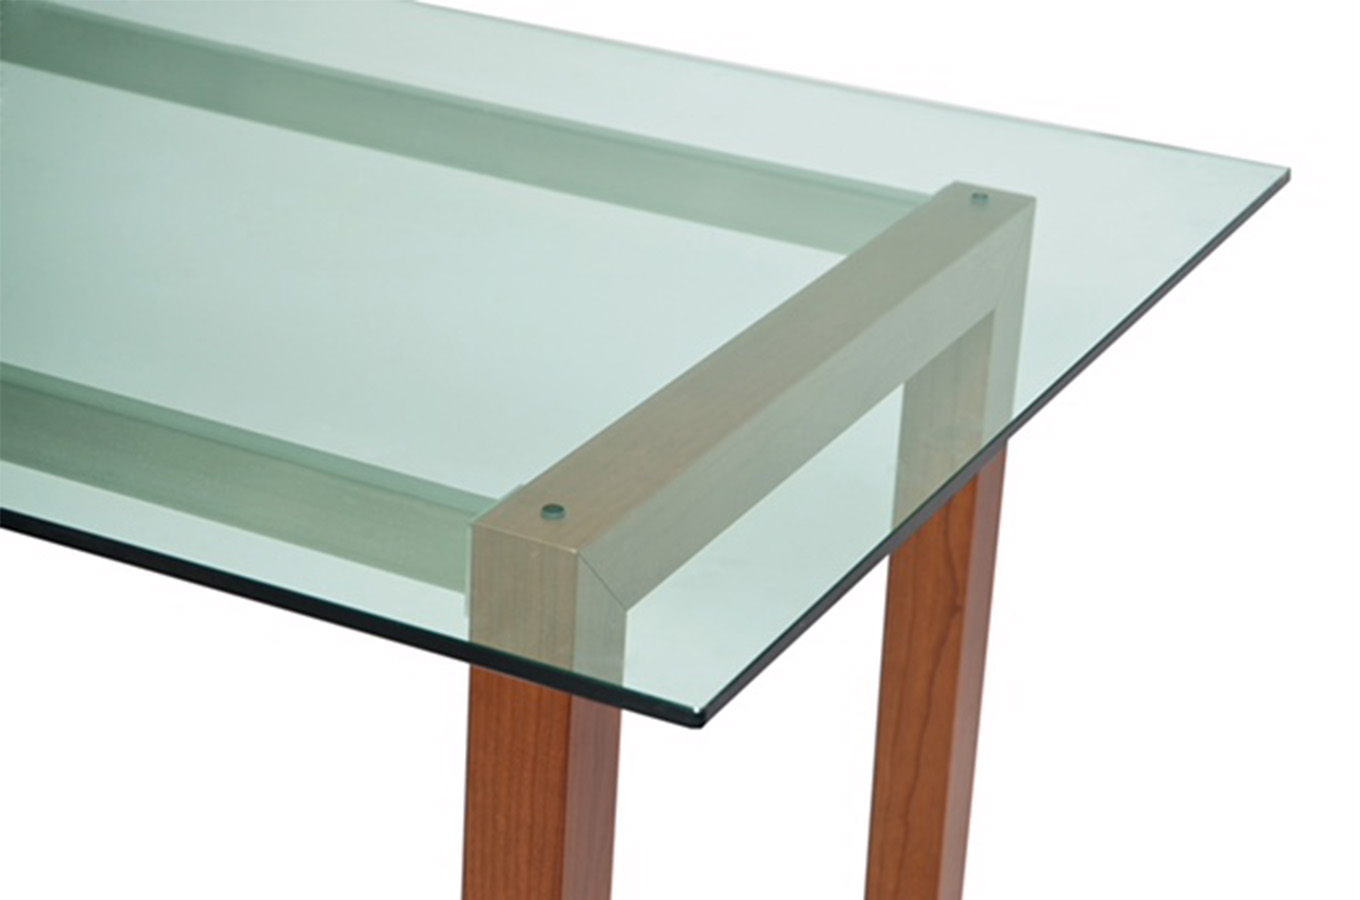 Puro table (cherry wood), Zanotta - Deesup